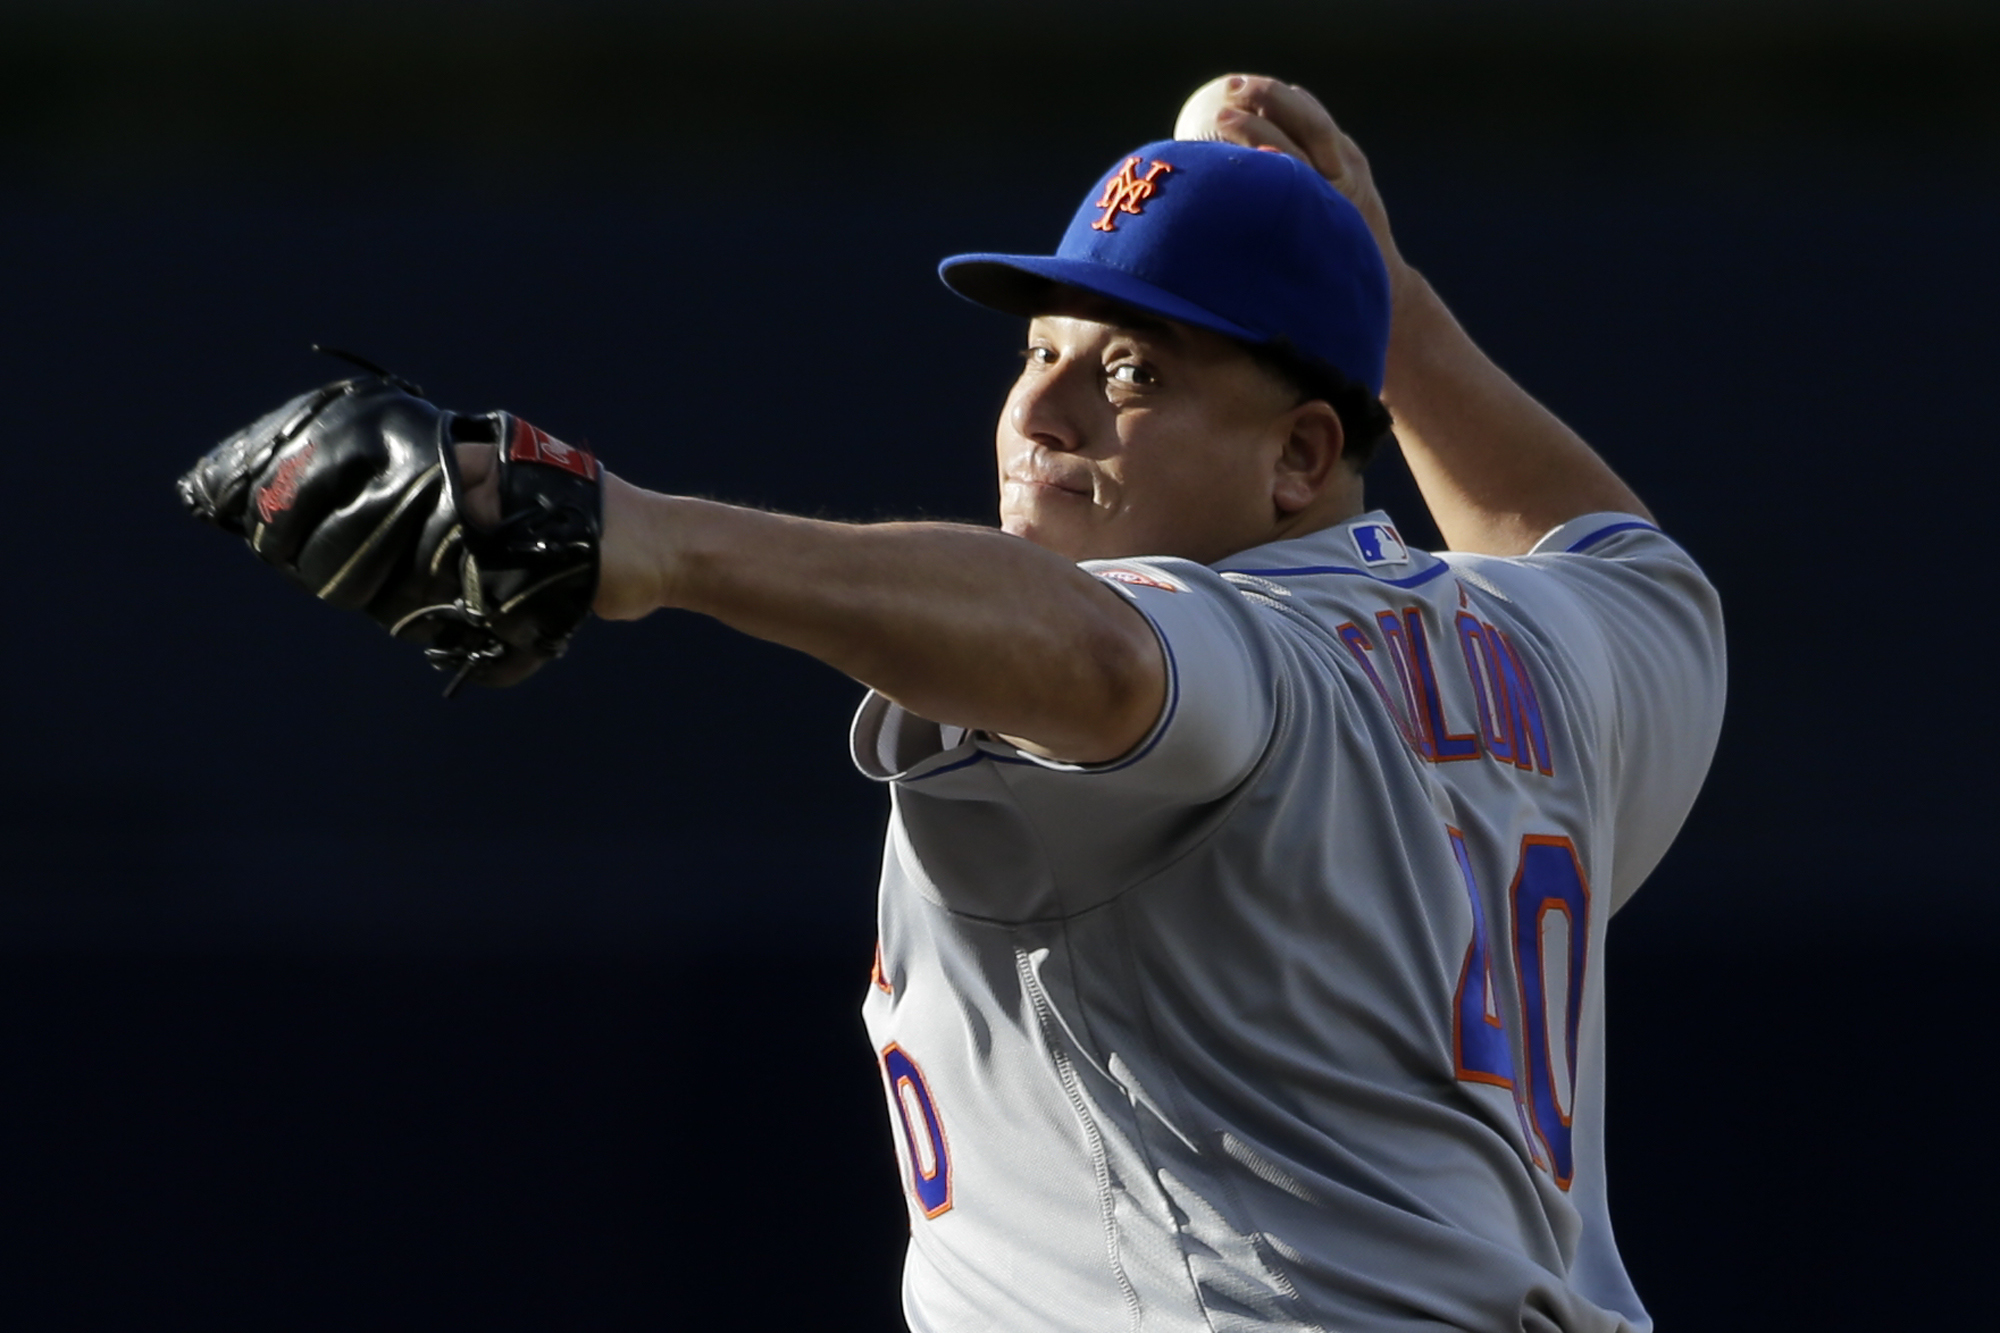 New York Mets starting pitcher Bartolo Colon pitches to a San Diego Padres batter during the first inning of a baseball game Saturday, May 7, 2016, in San Diego. (AP Photo/Gregory Bull)